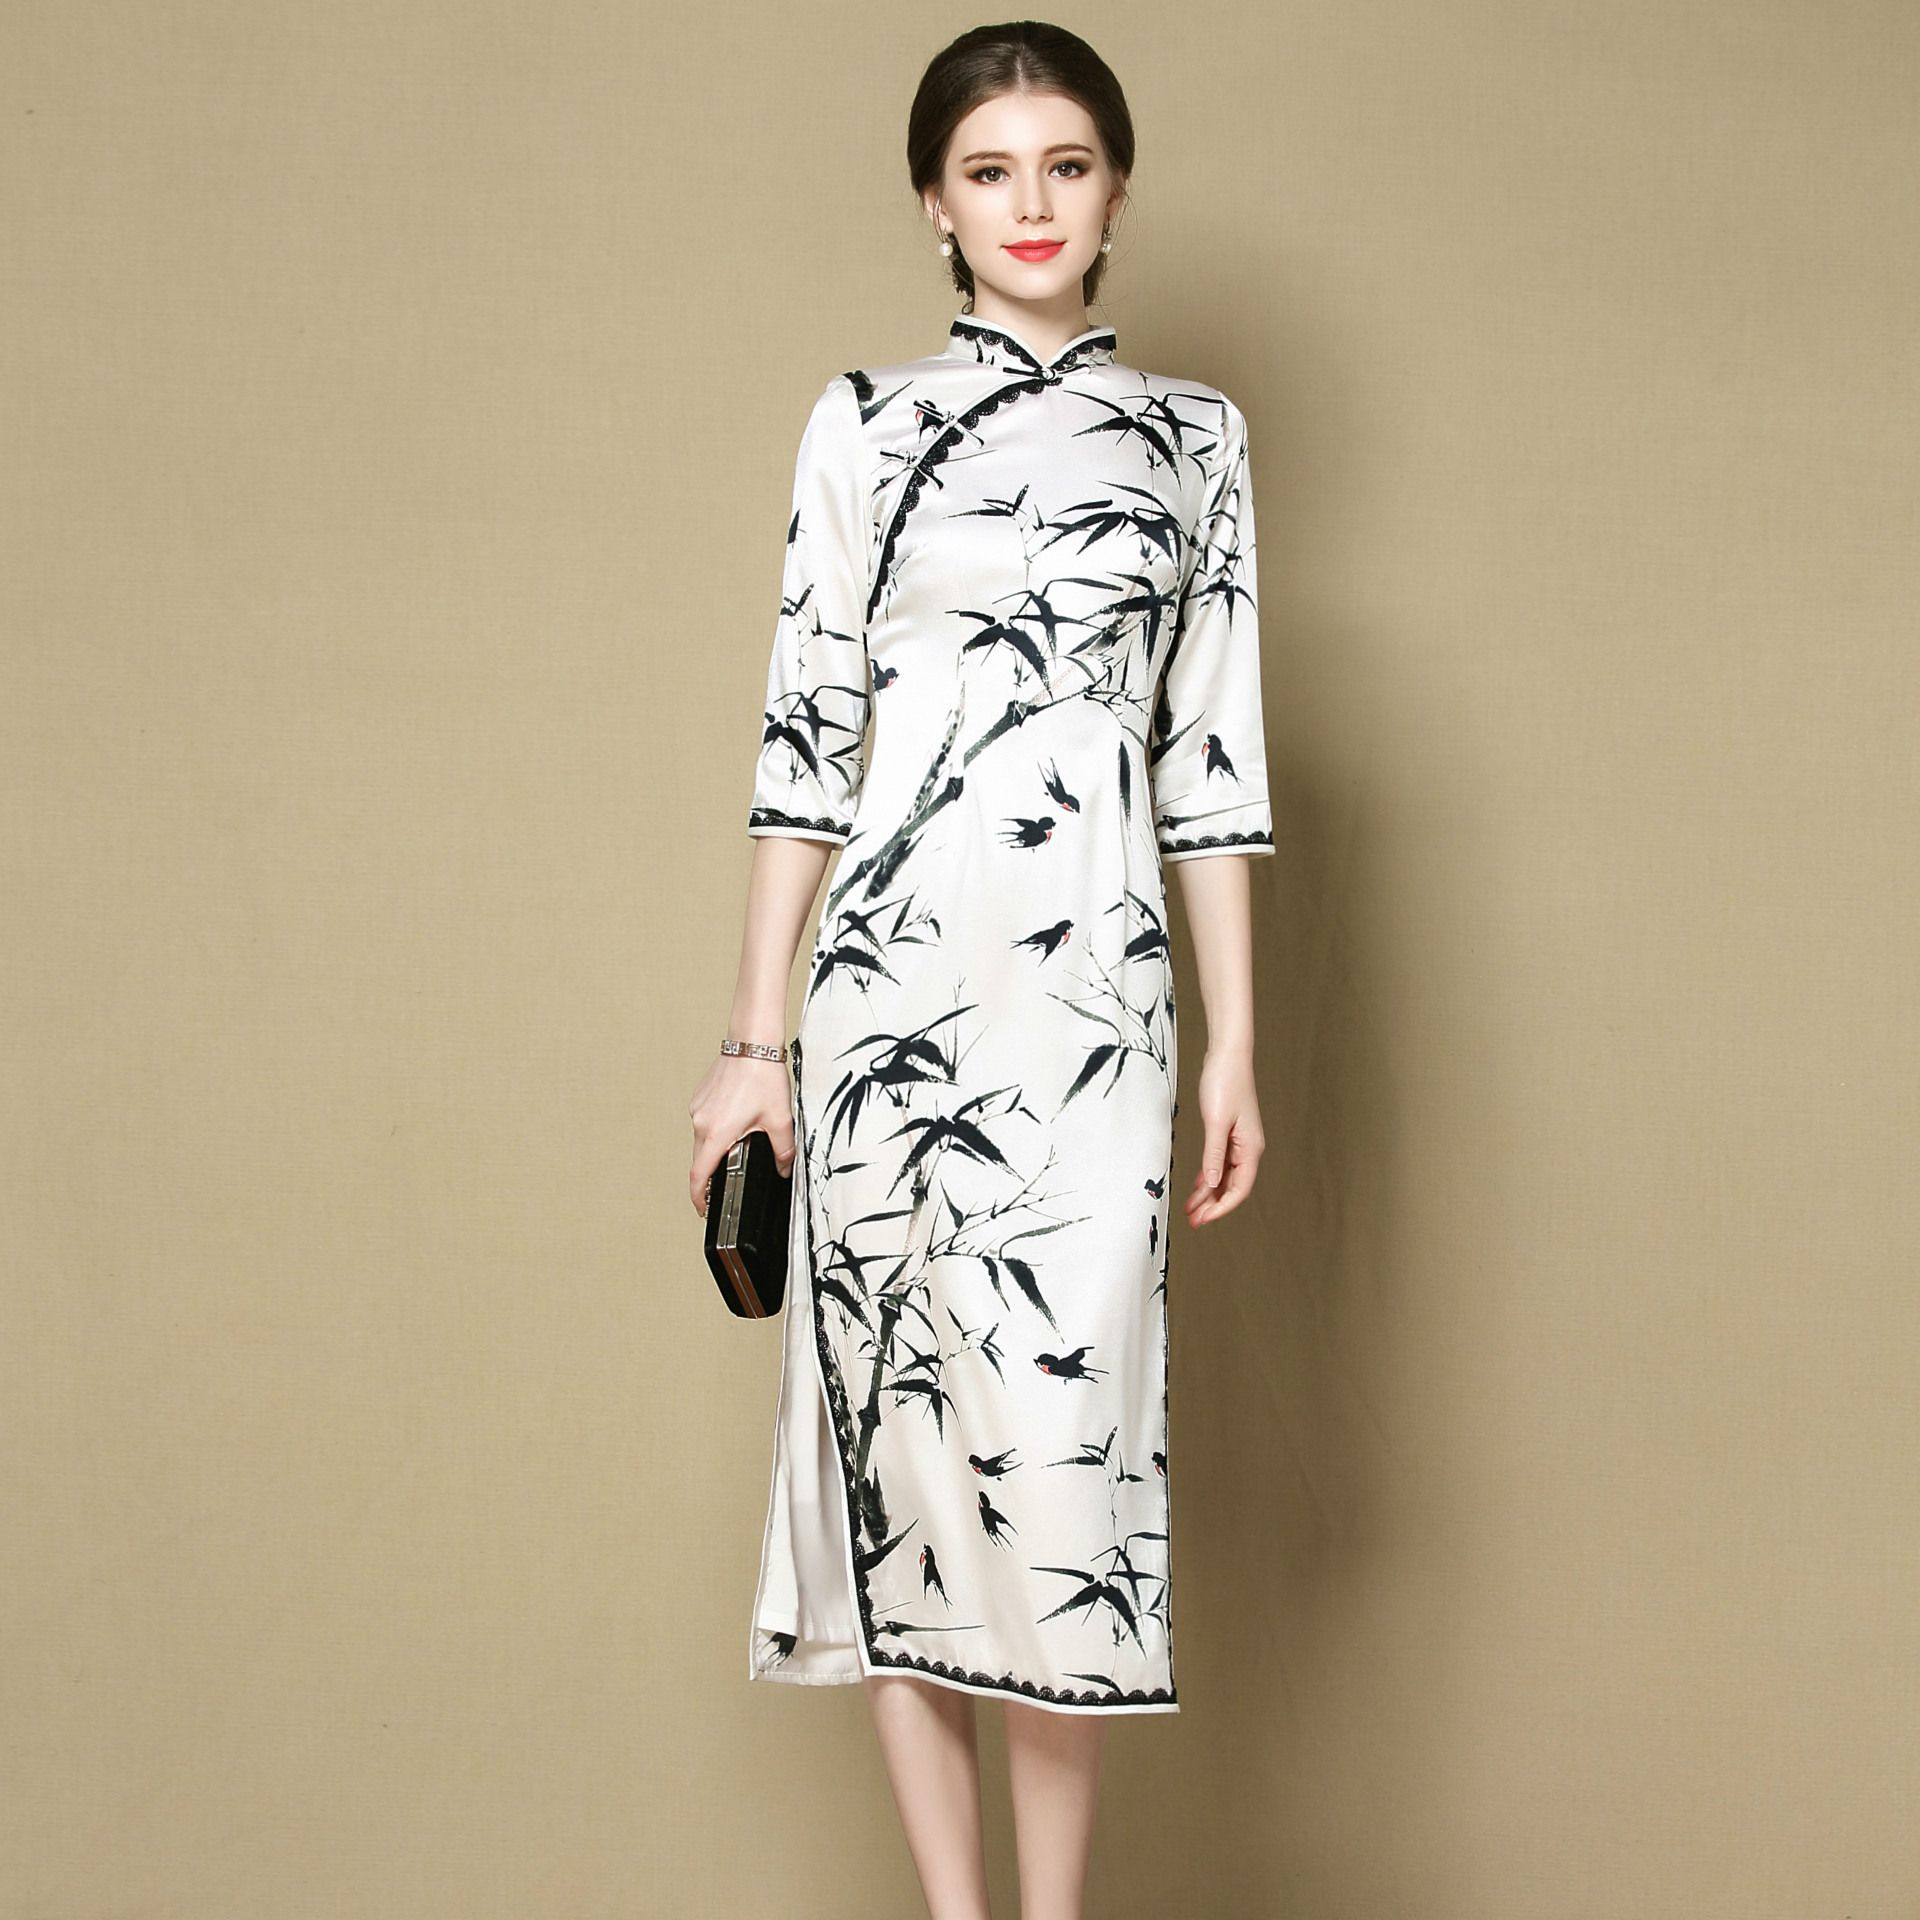 Enchanting Bamboo Print Silk Cheongsam Qipao Dress